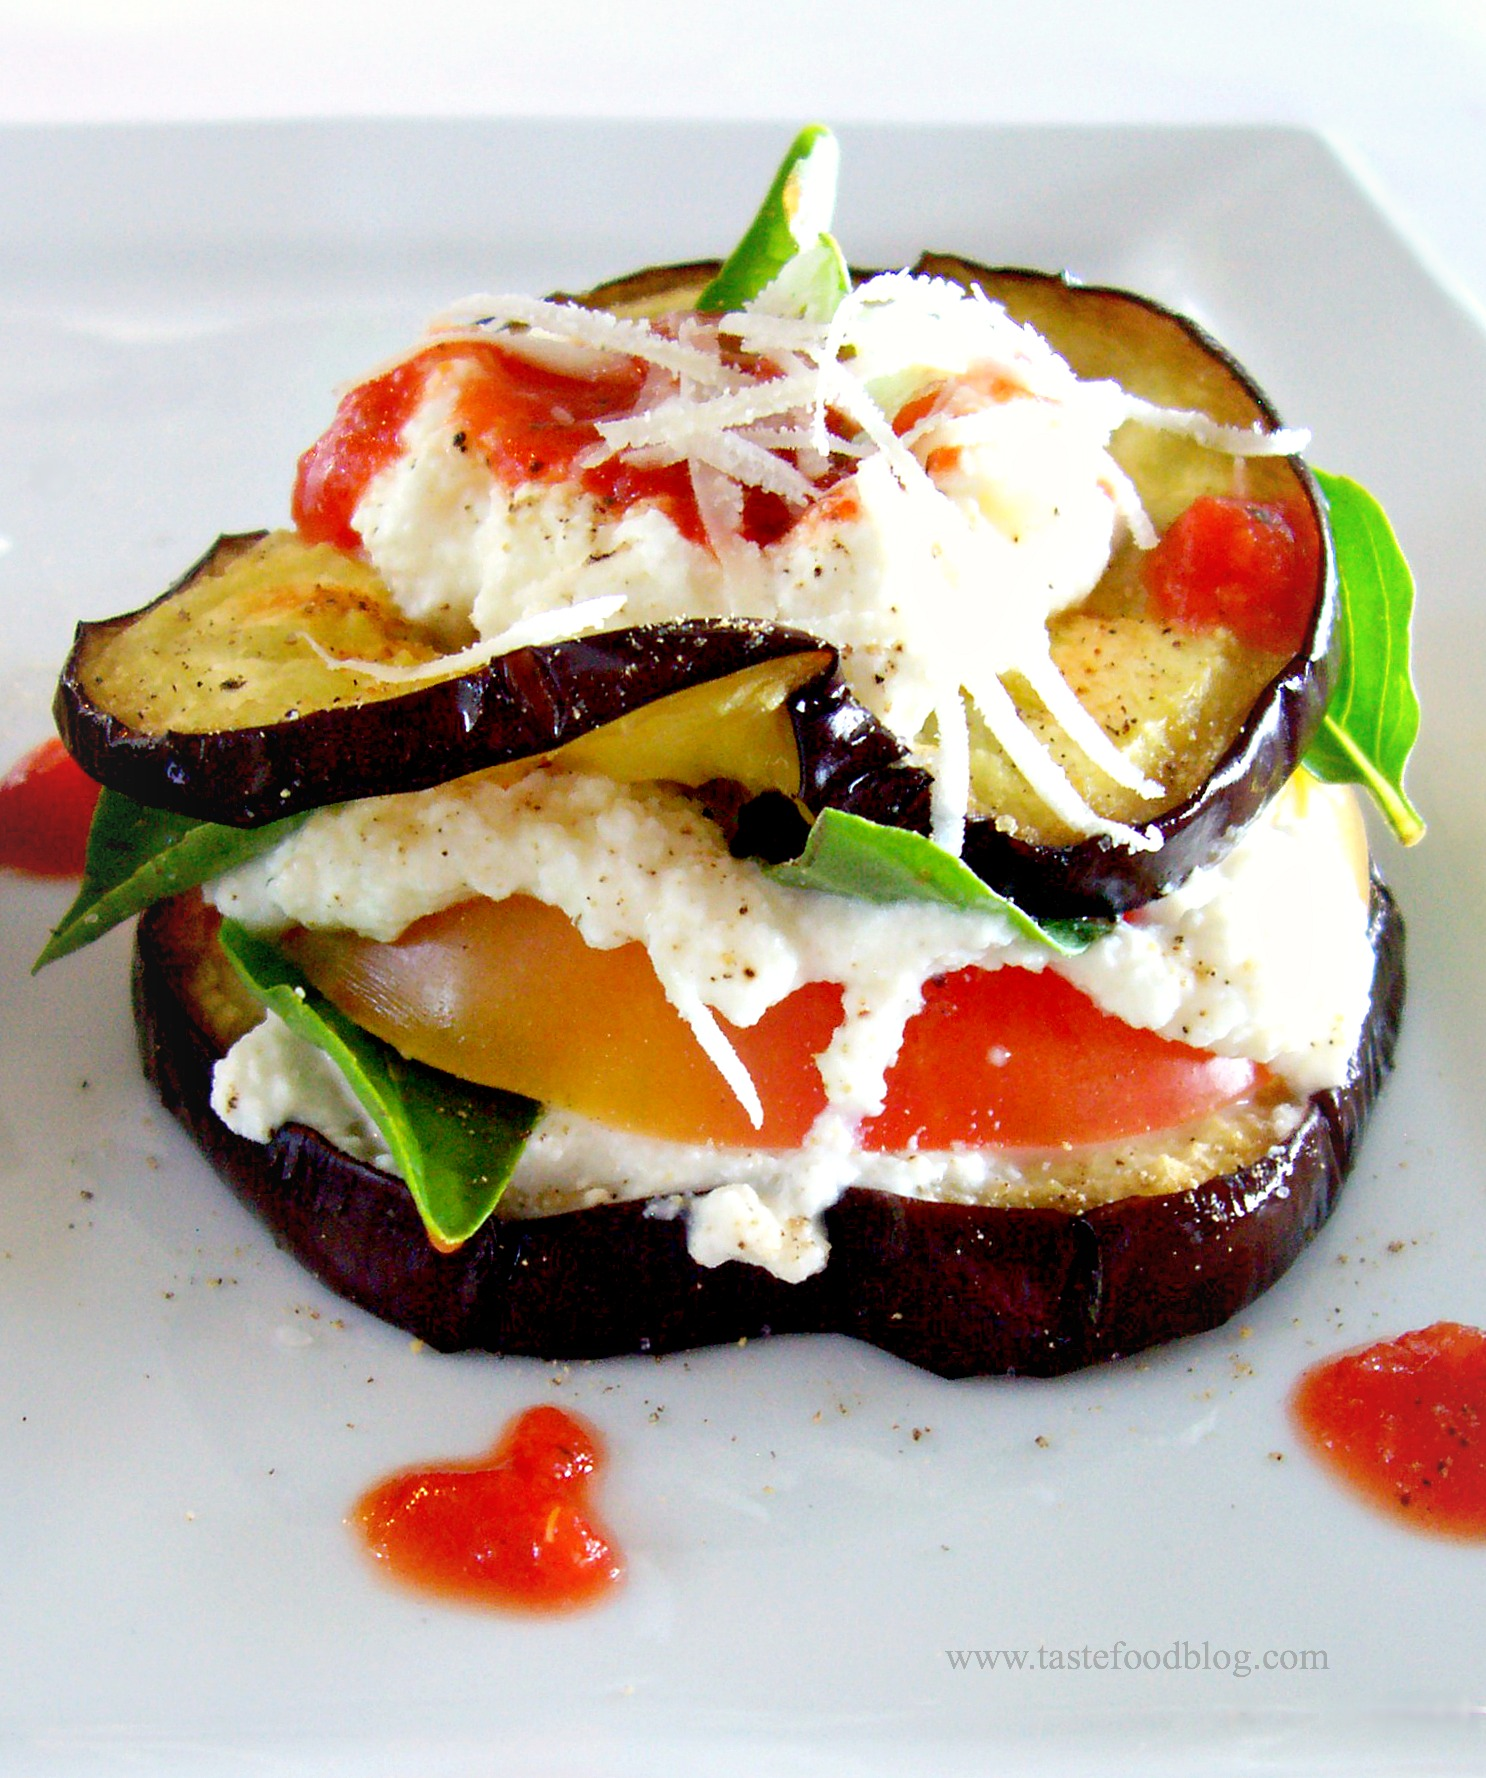 Grilled Eggplant and Heirloom Tomato Stacks with Basil and Tomato